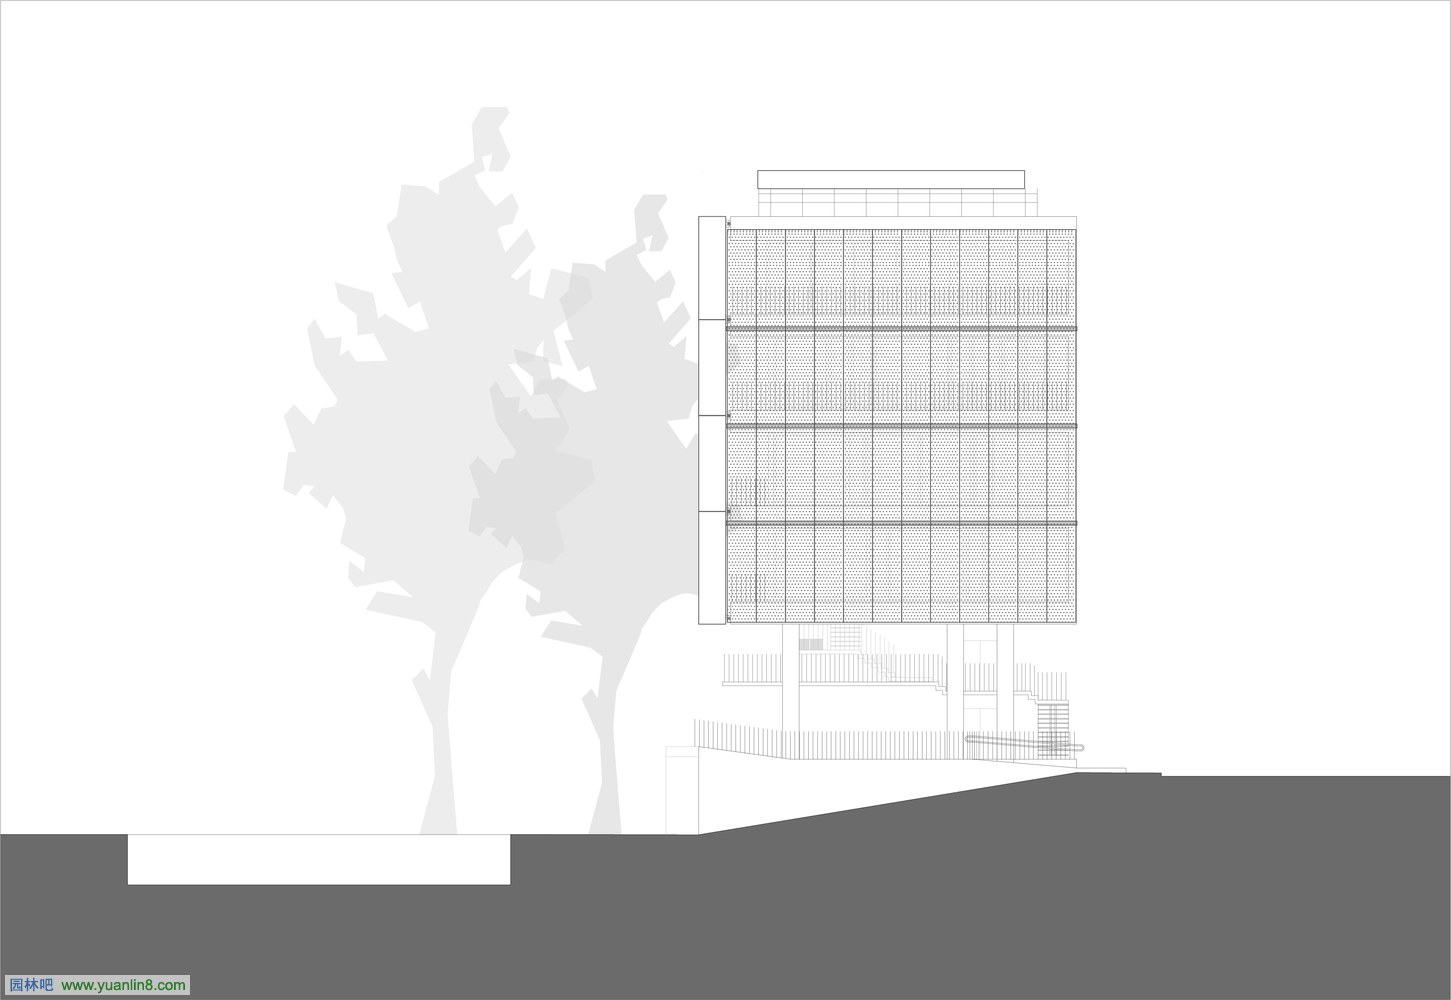 04_South_Elevation